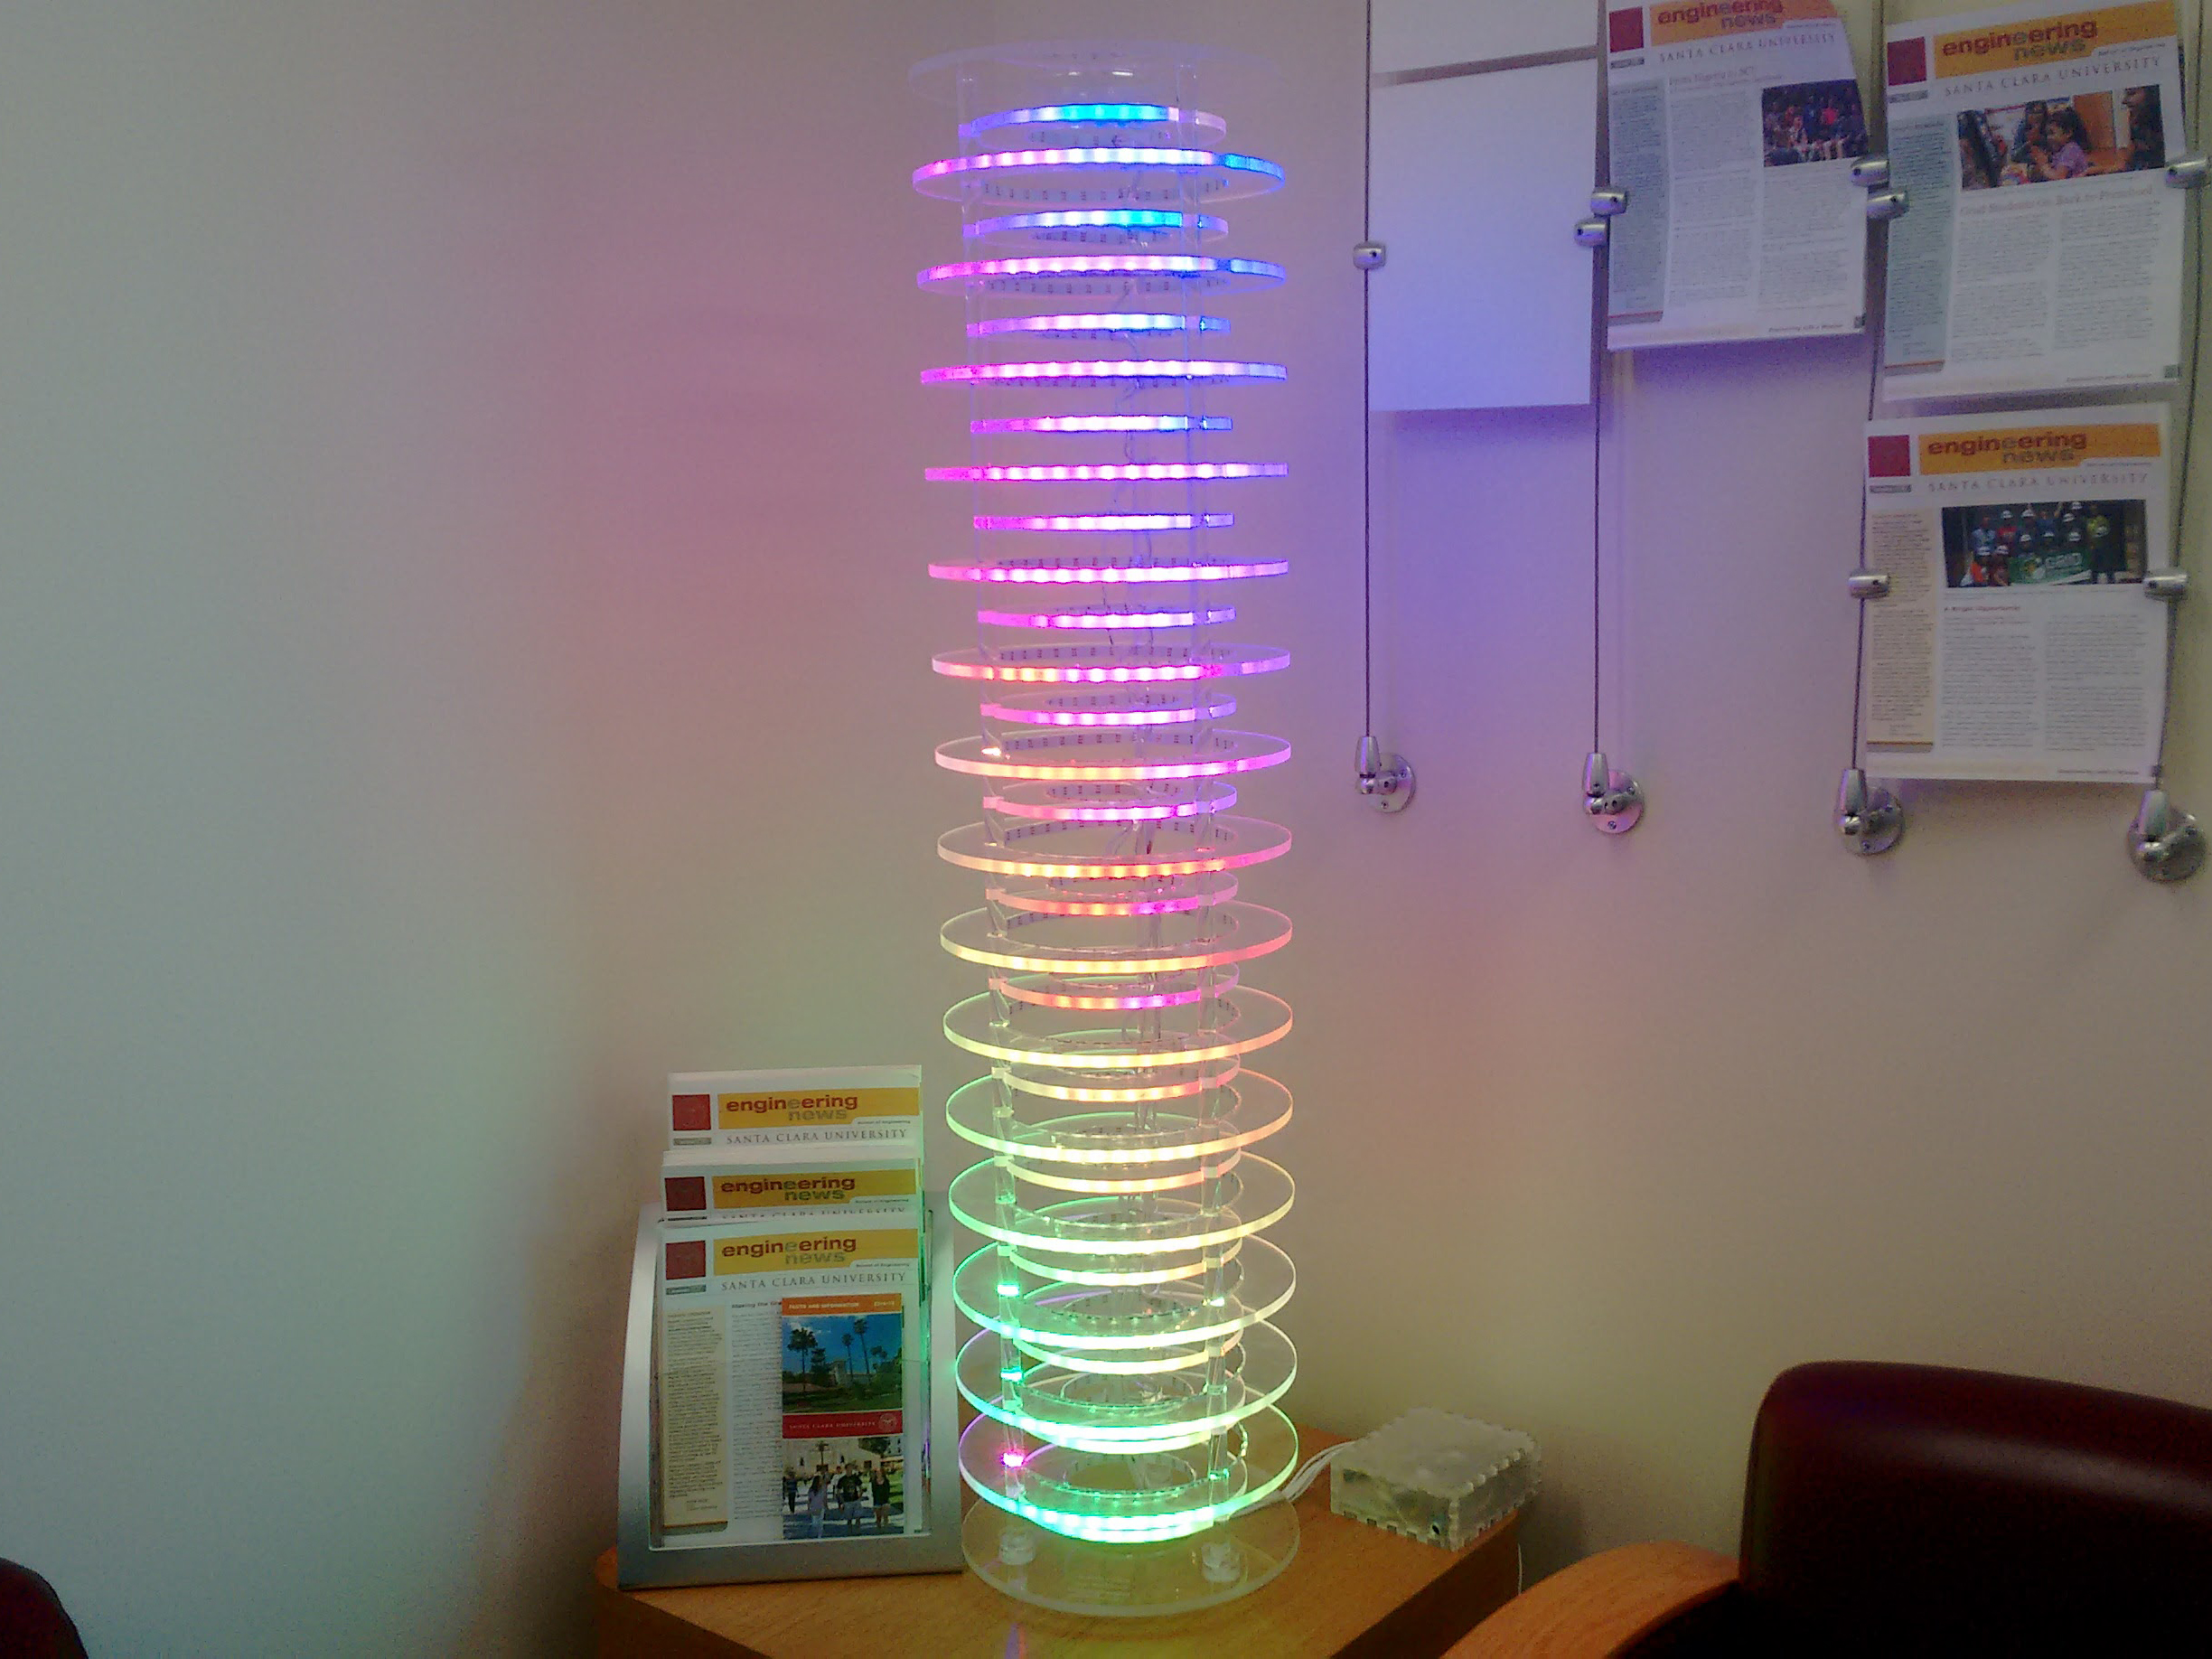 LED art piece made by KEEN Engineering Art Challenge winners